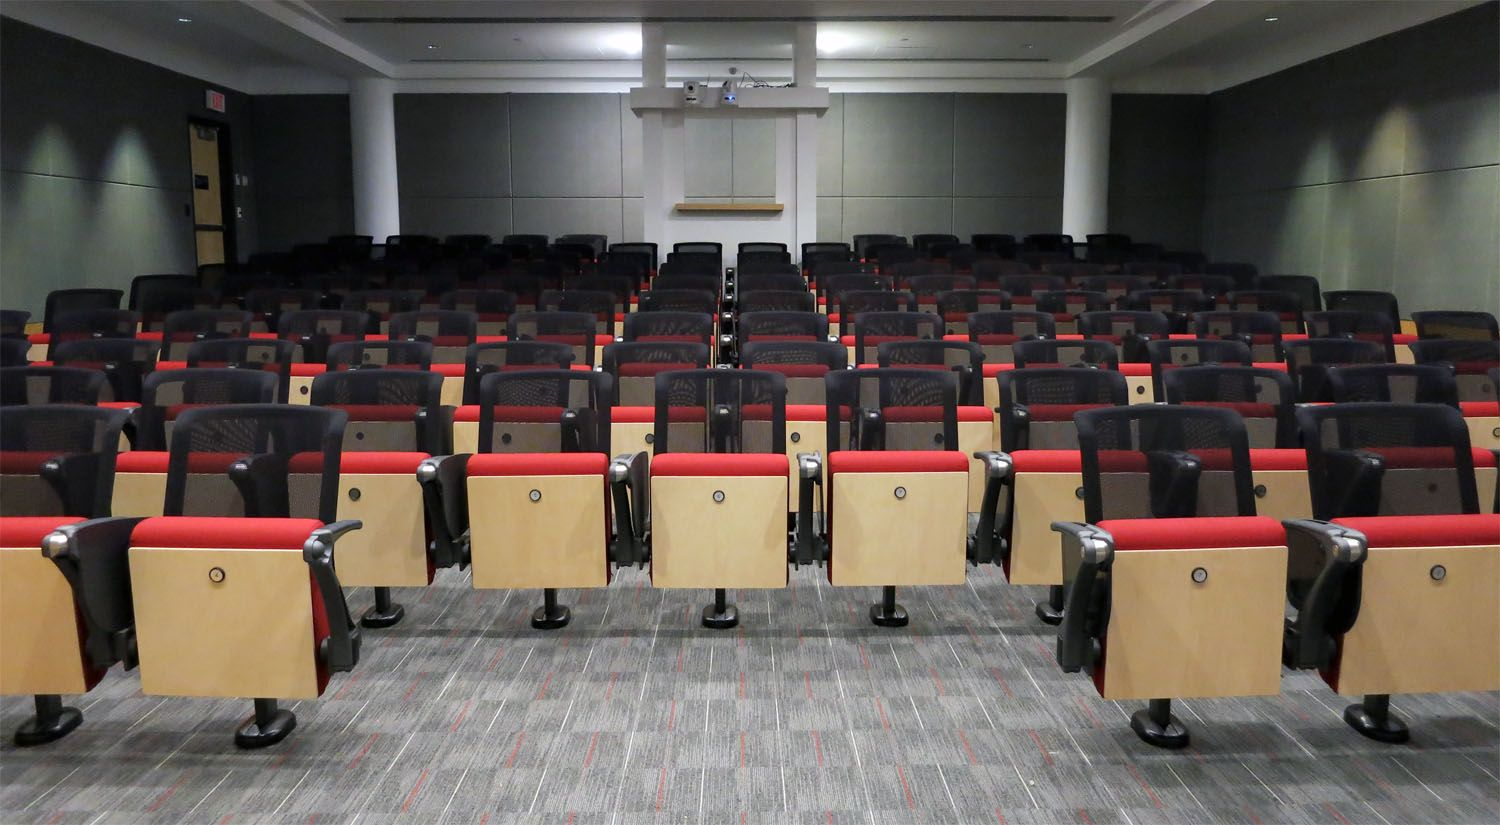 Sedie Auditorium ~ Introducing the ft20 mesh back. pictured: mason gross school of